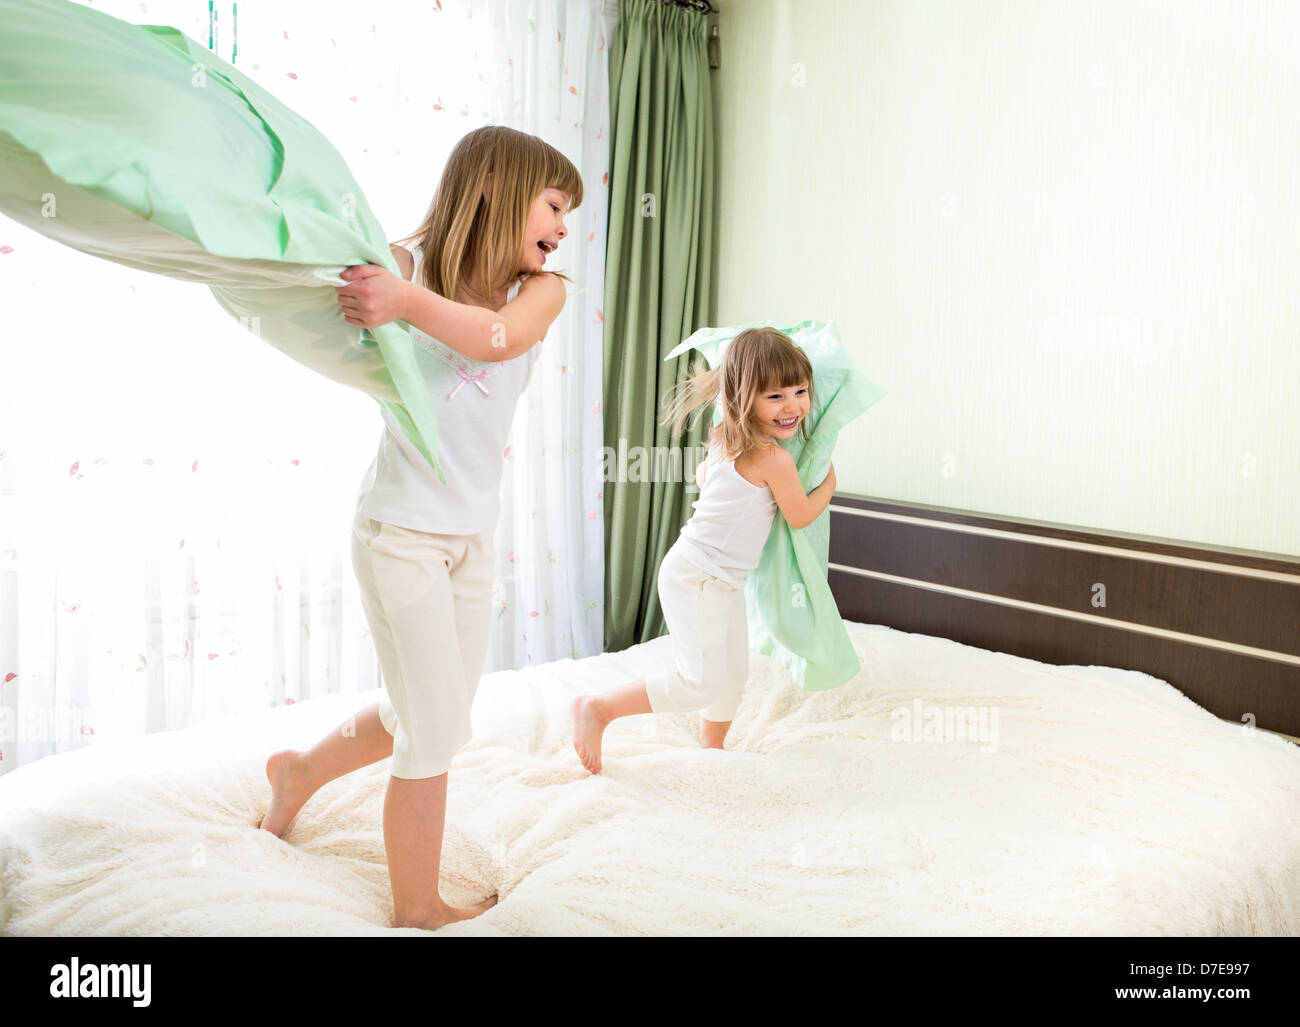 Little girls fighting using pillows in bedroom - Stock Image